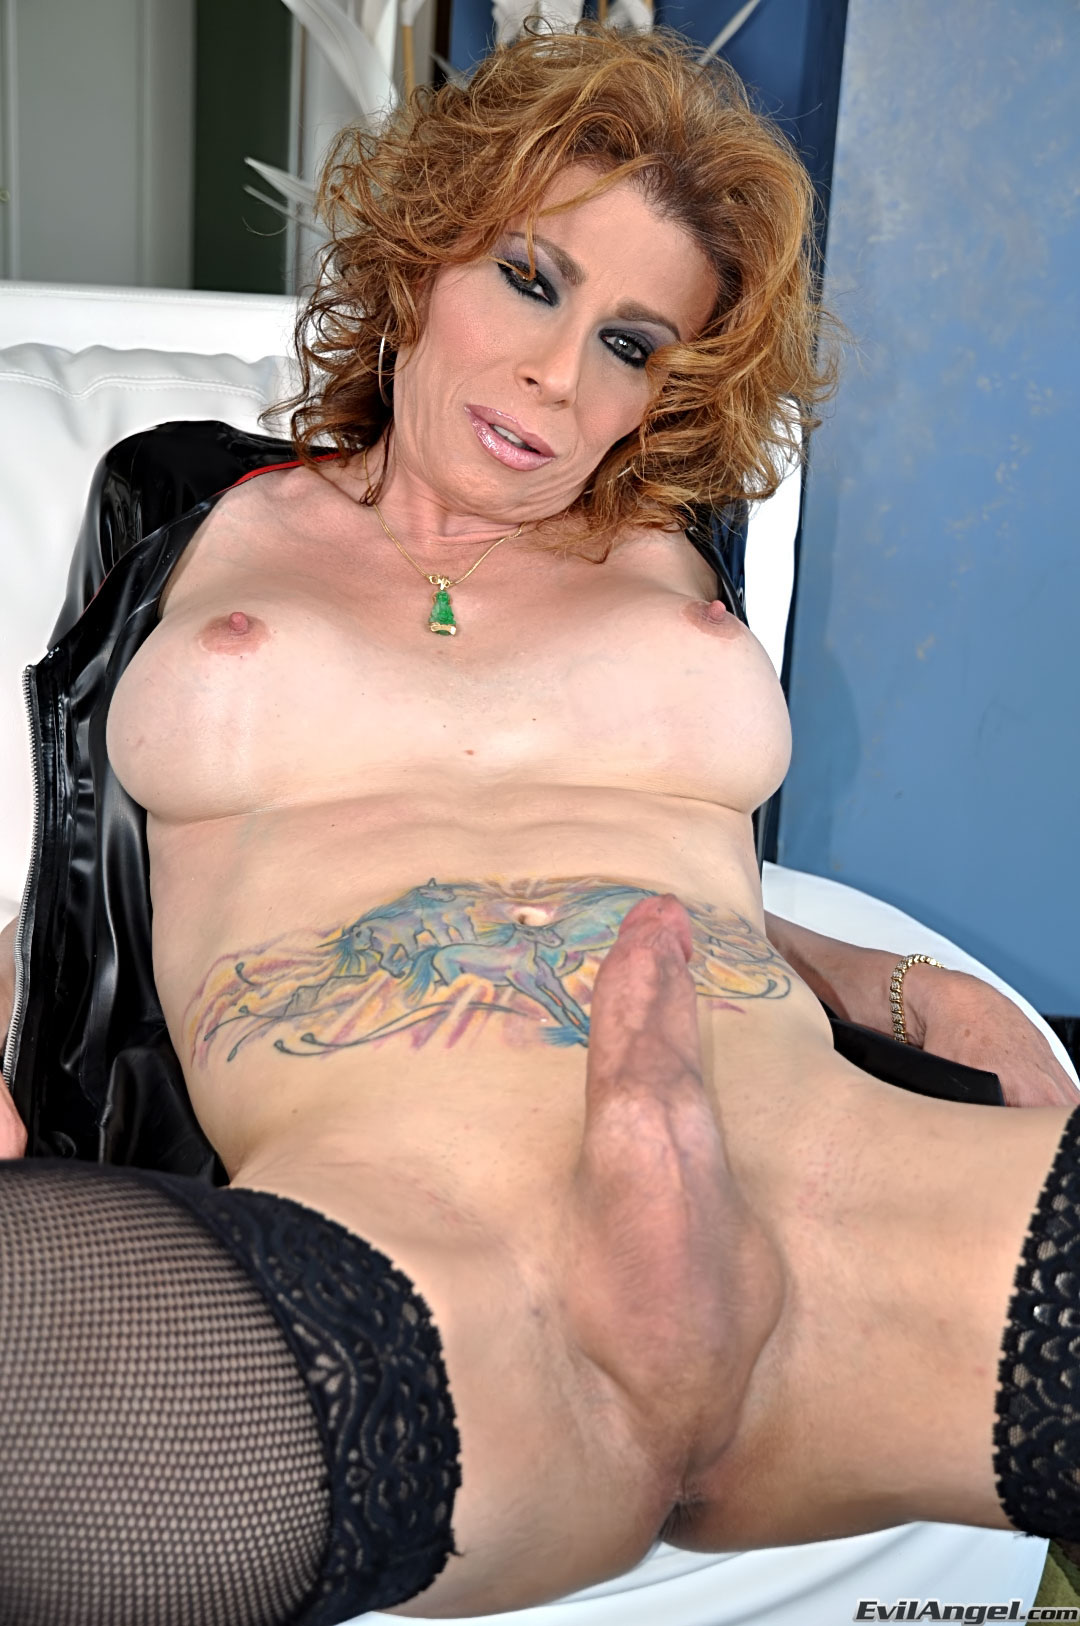 Tranny or woman